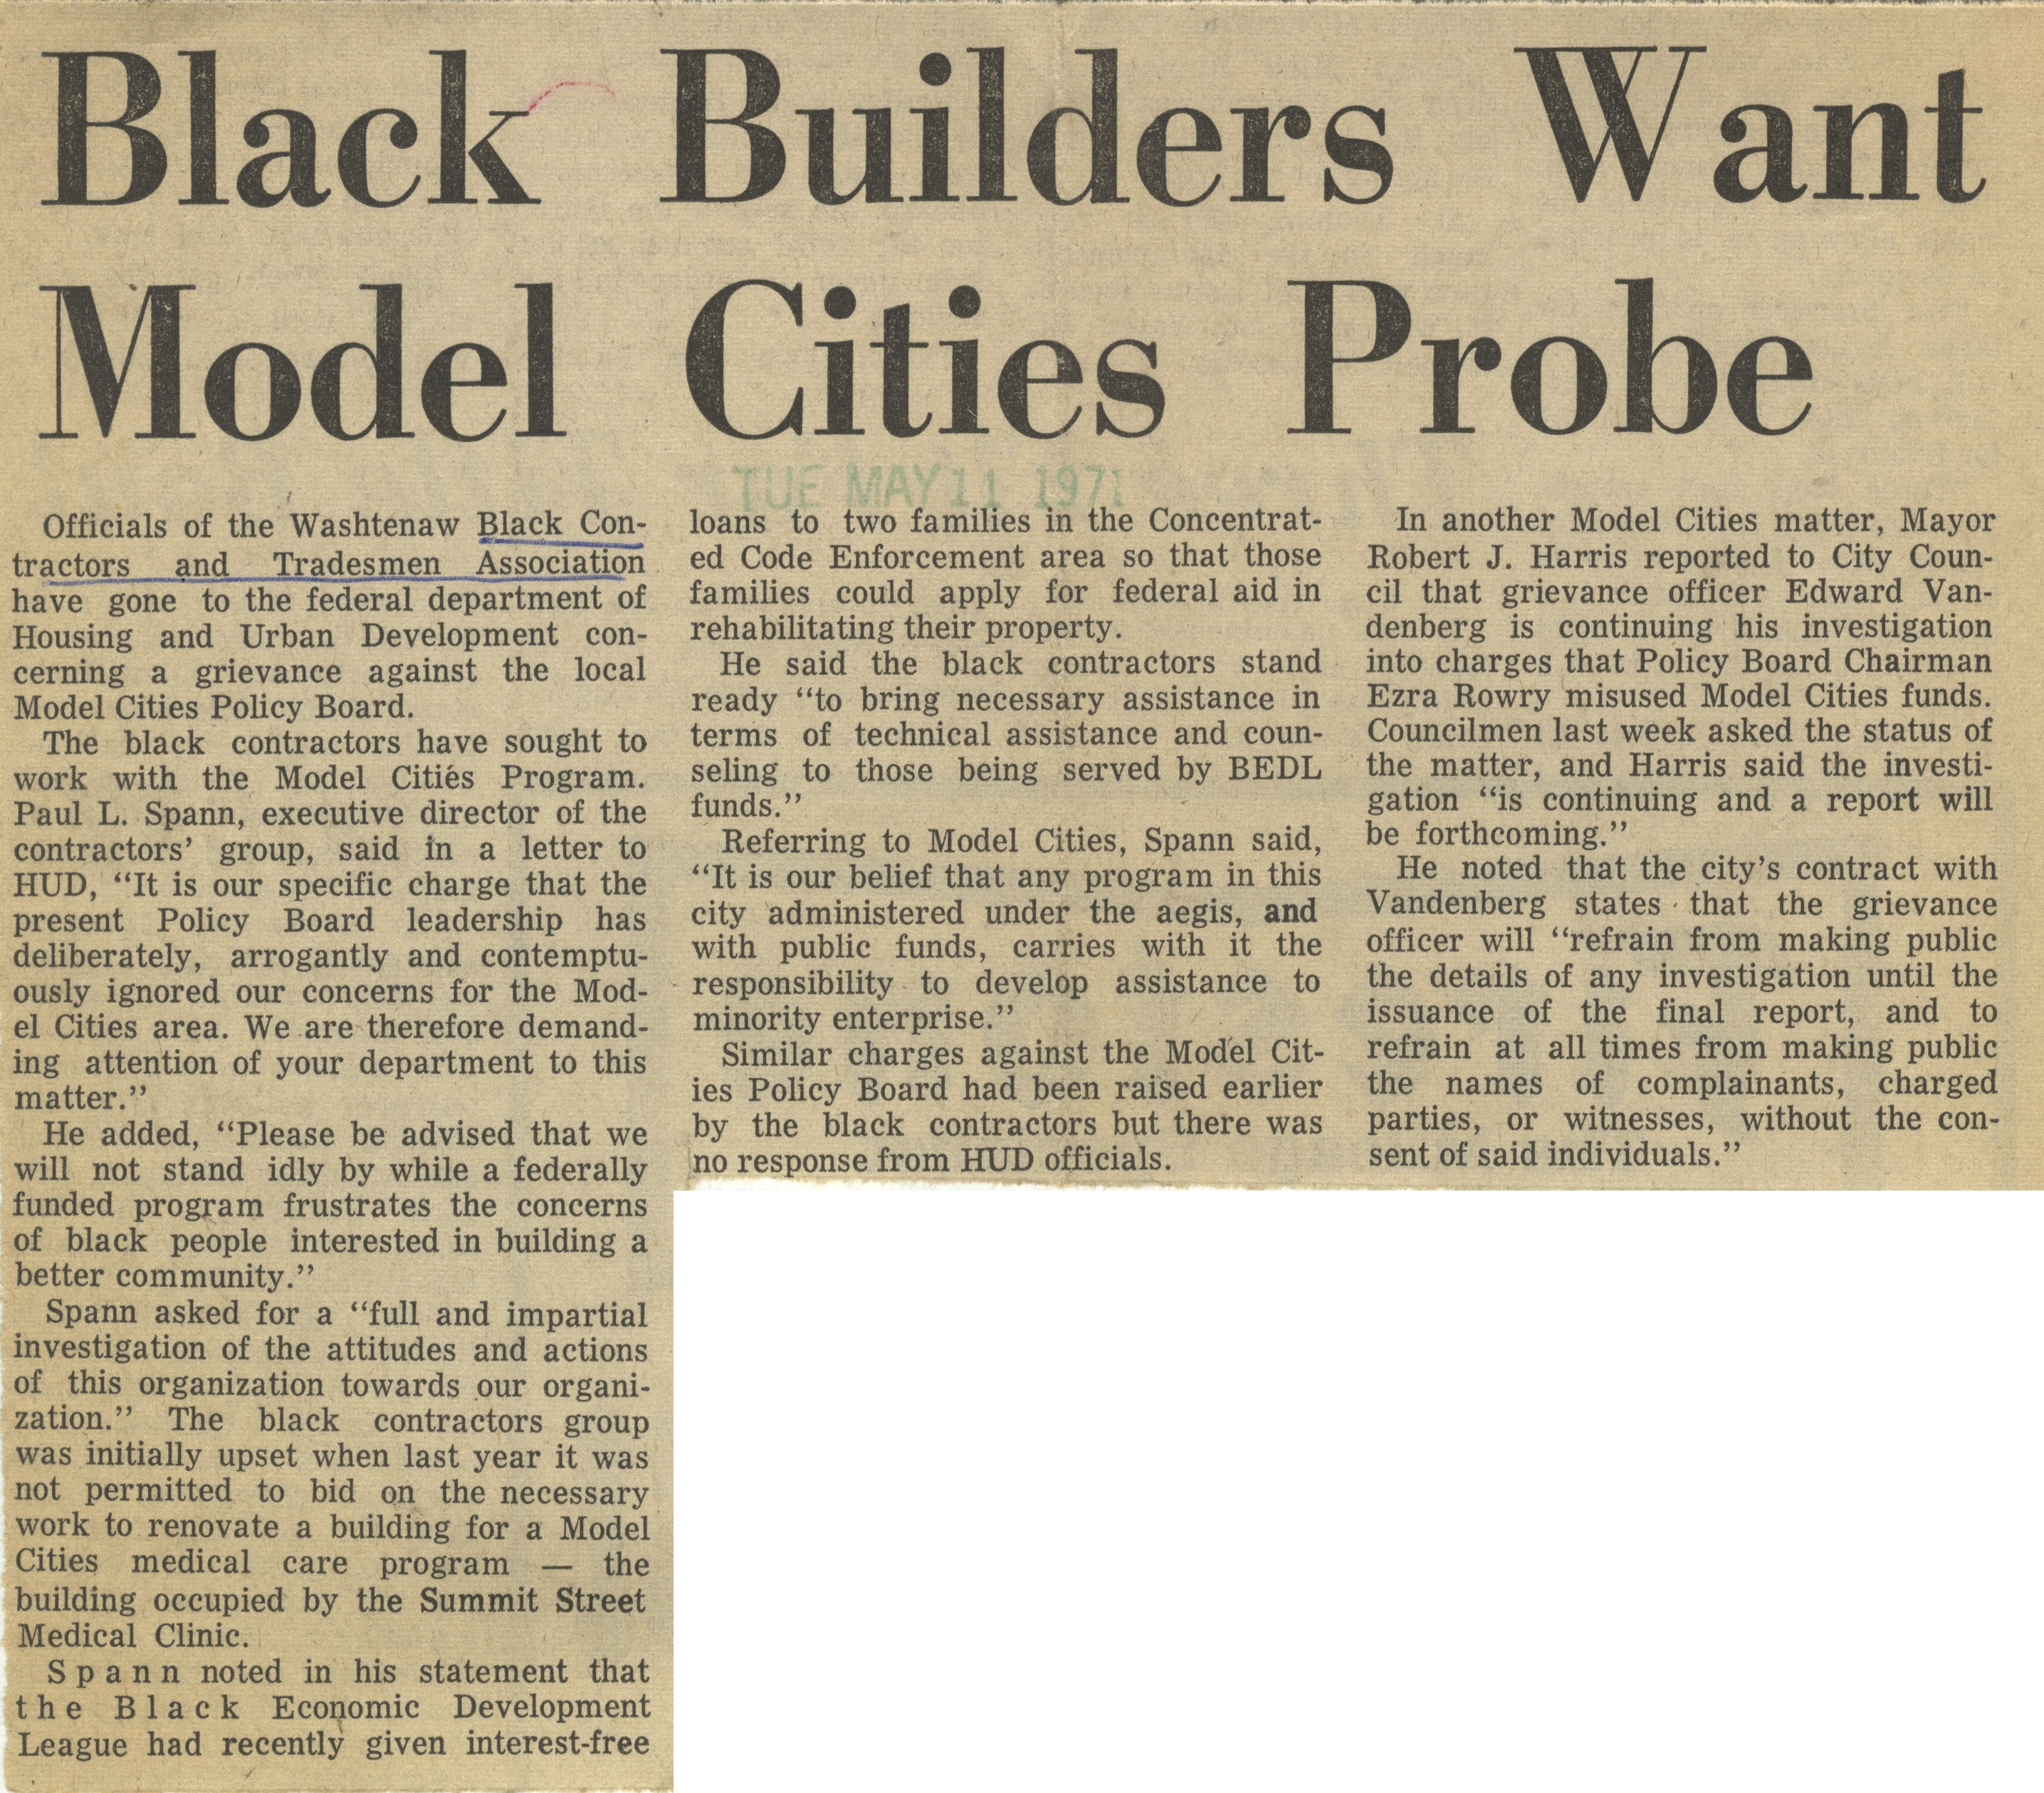 Black Builders Want Model Cities Probe image